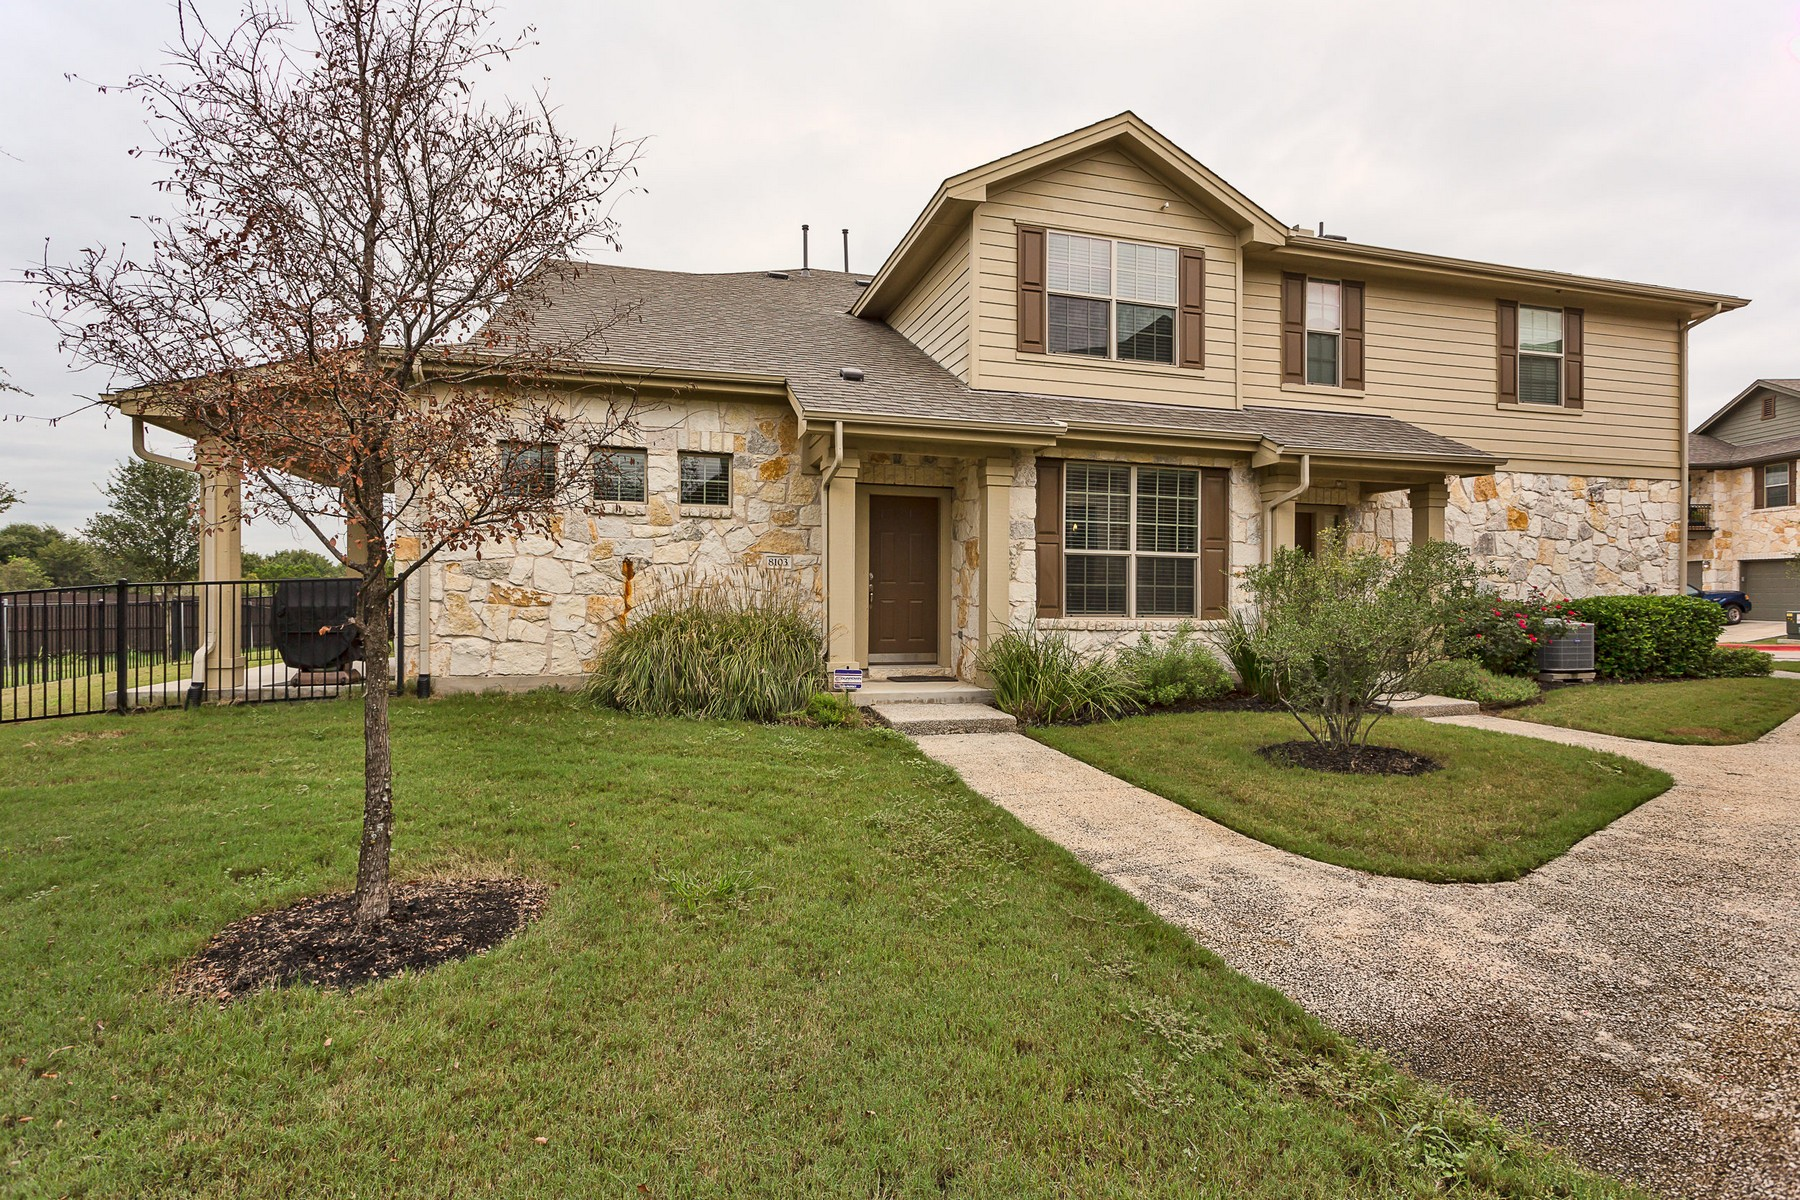 Condominium for Sale at Immaculate Home in Brodie Heights 3101 Davis Ln 8103 Austin, Texas 78748 United States